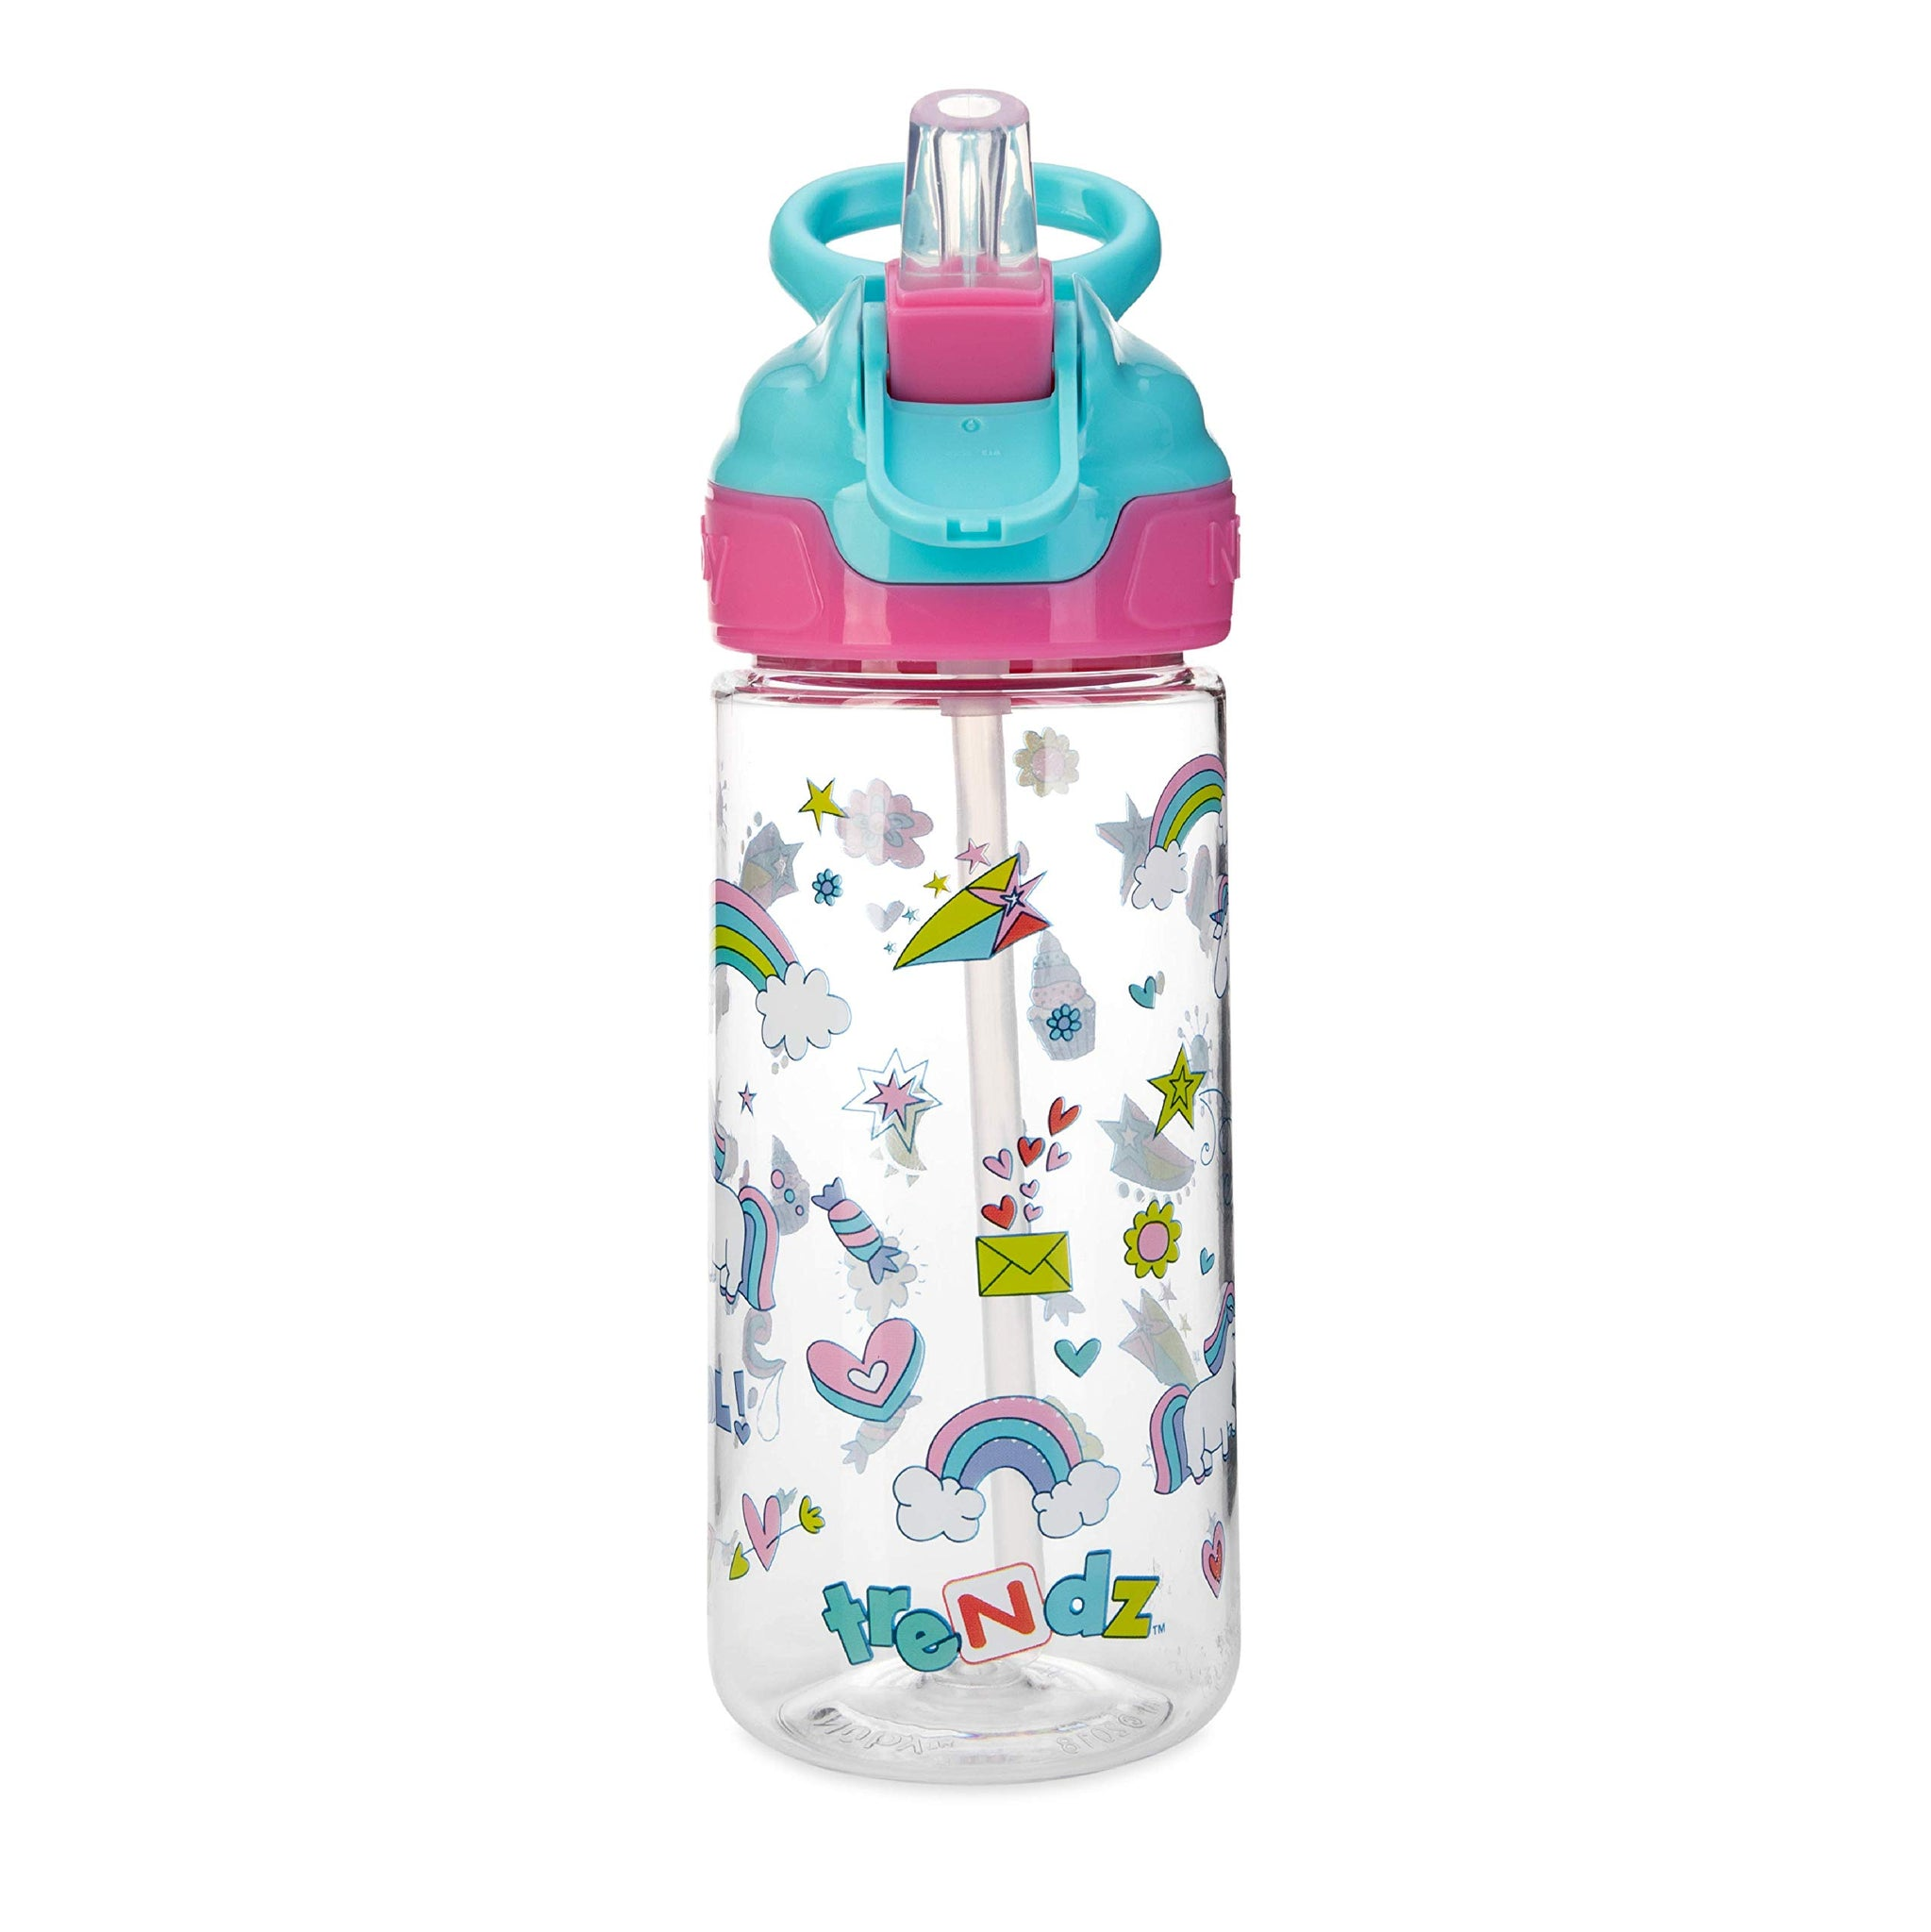 Nuby Trendz Grande Water Bottle, 540 ml, Unicorns